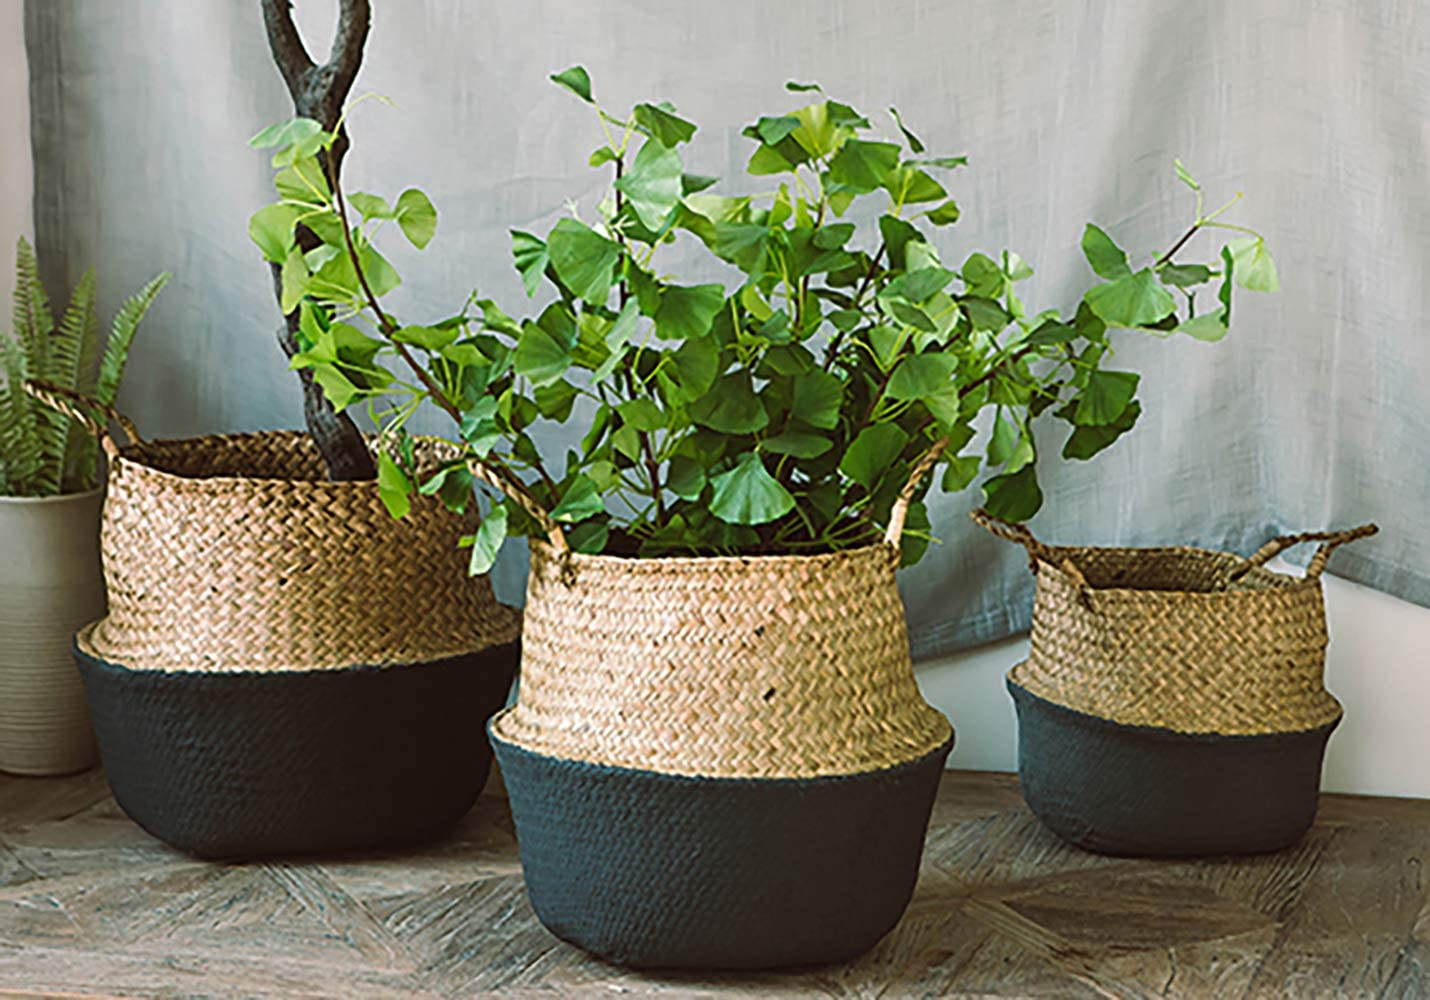 Toy Storage Laundry Picnic Black Hand Woven Plant Basket with Handles Plant Pot Cover M Perfect for Storage Yesland 2 Pack Seagrass Belly Basket